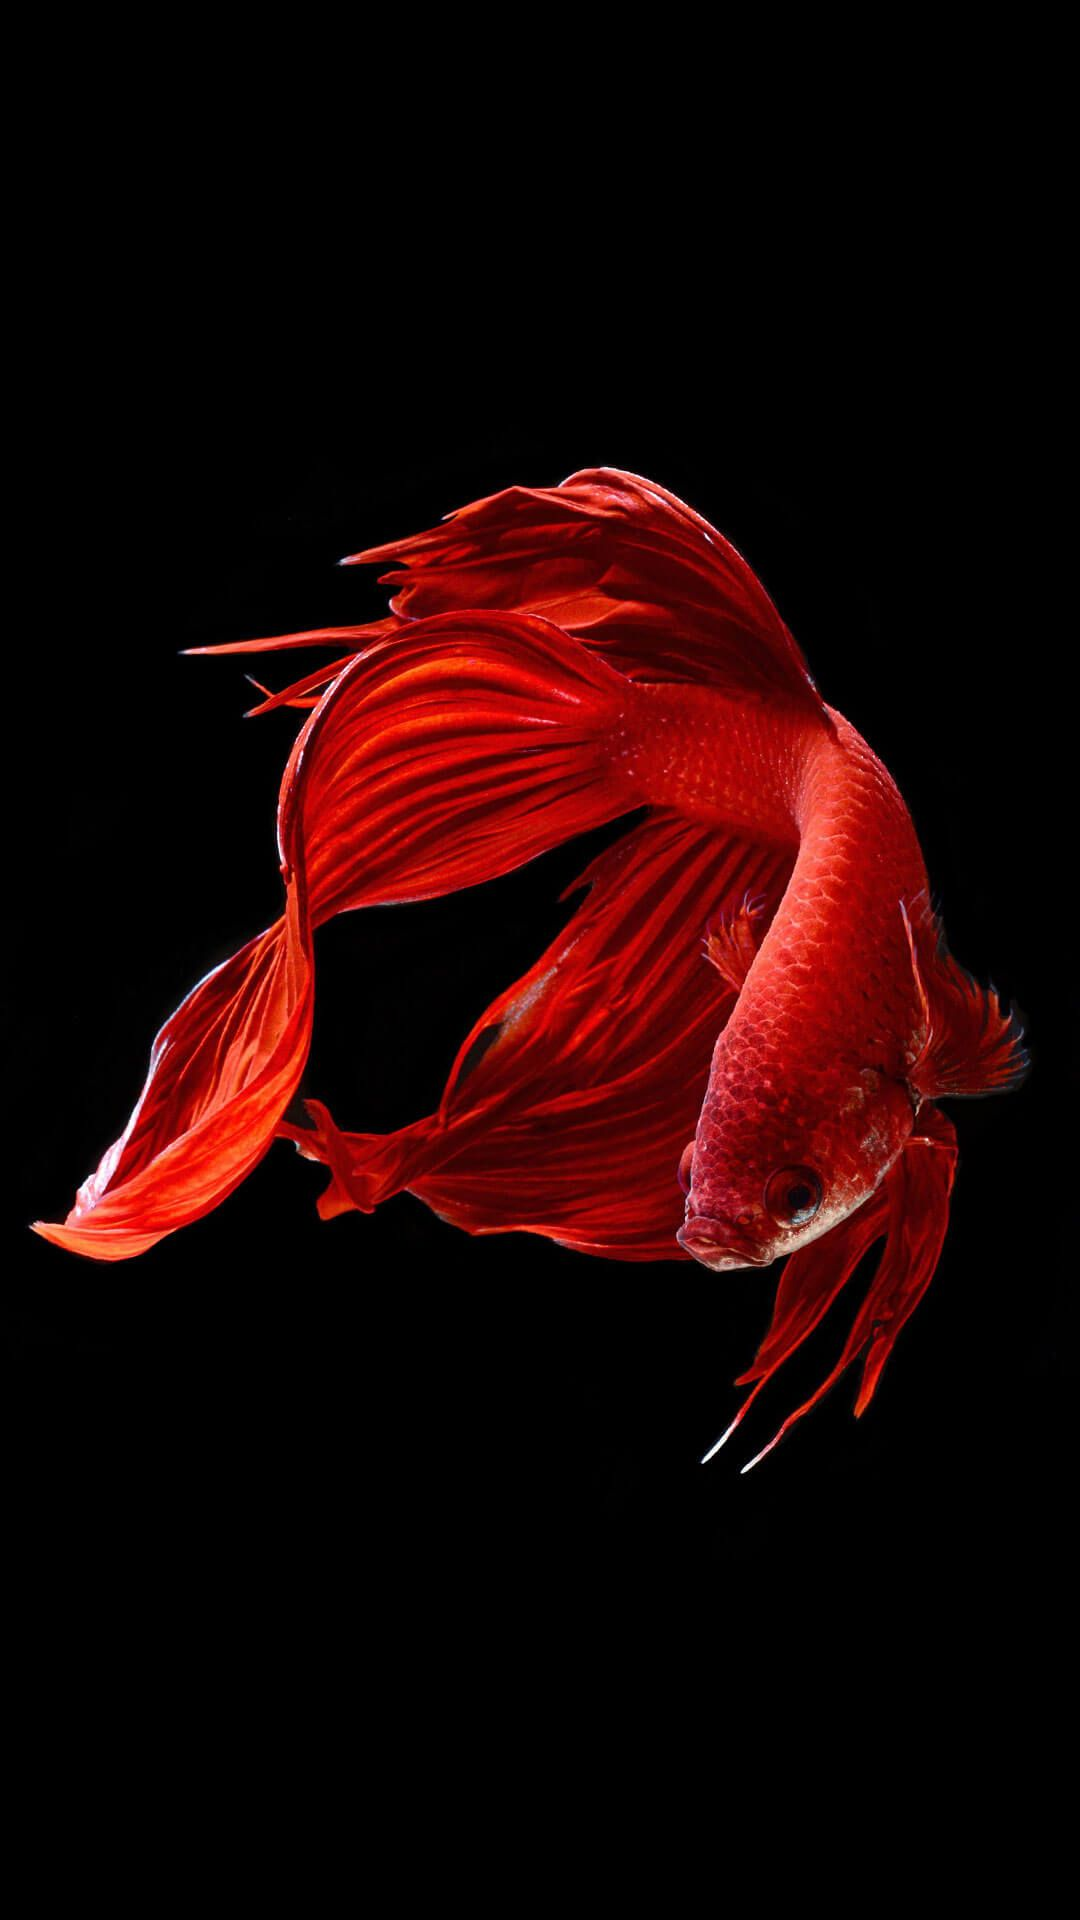 betta fish wallpaper ios 9 hd | animal wallpaper for iphone